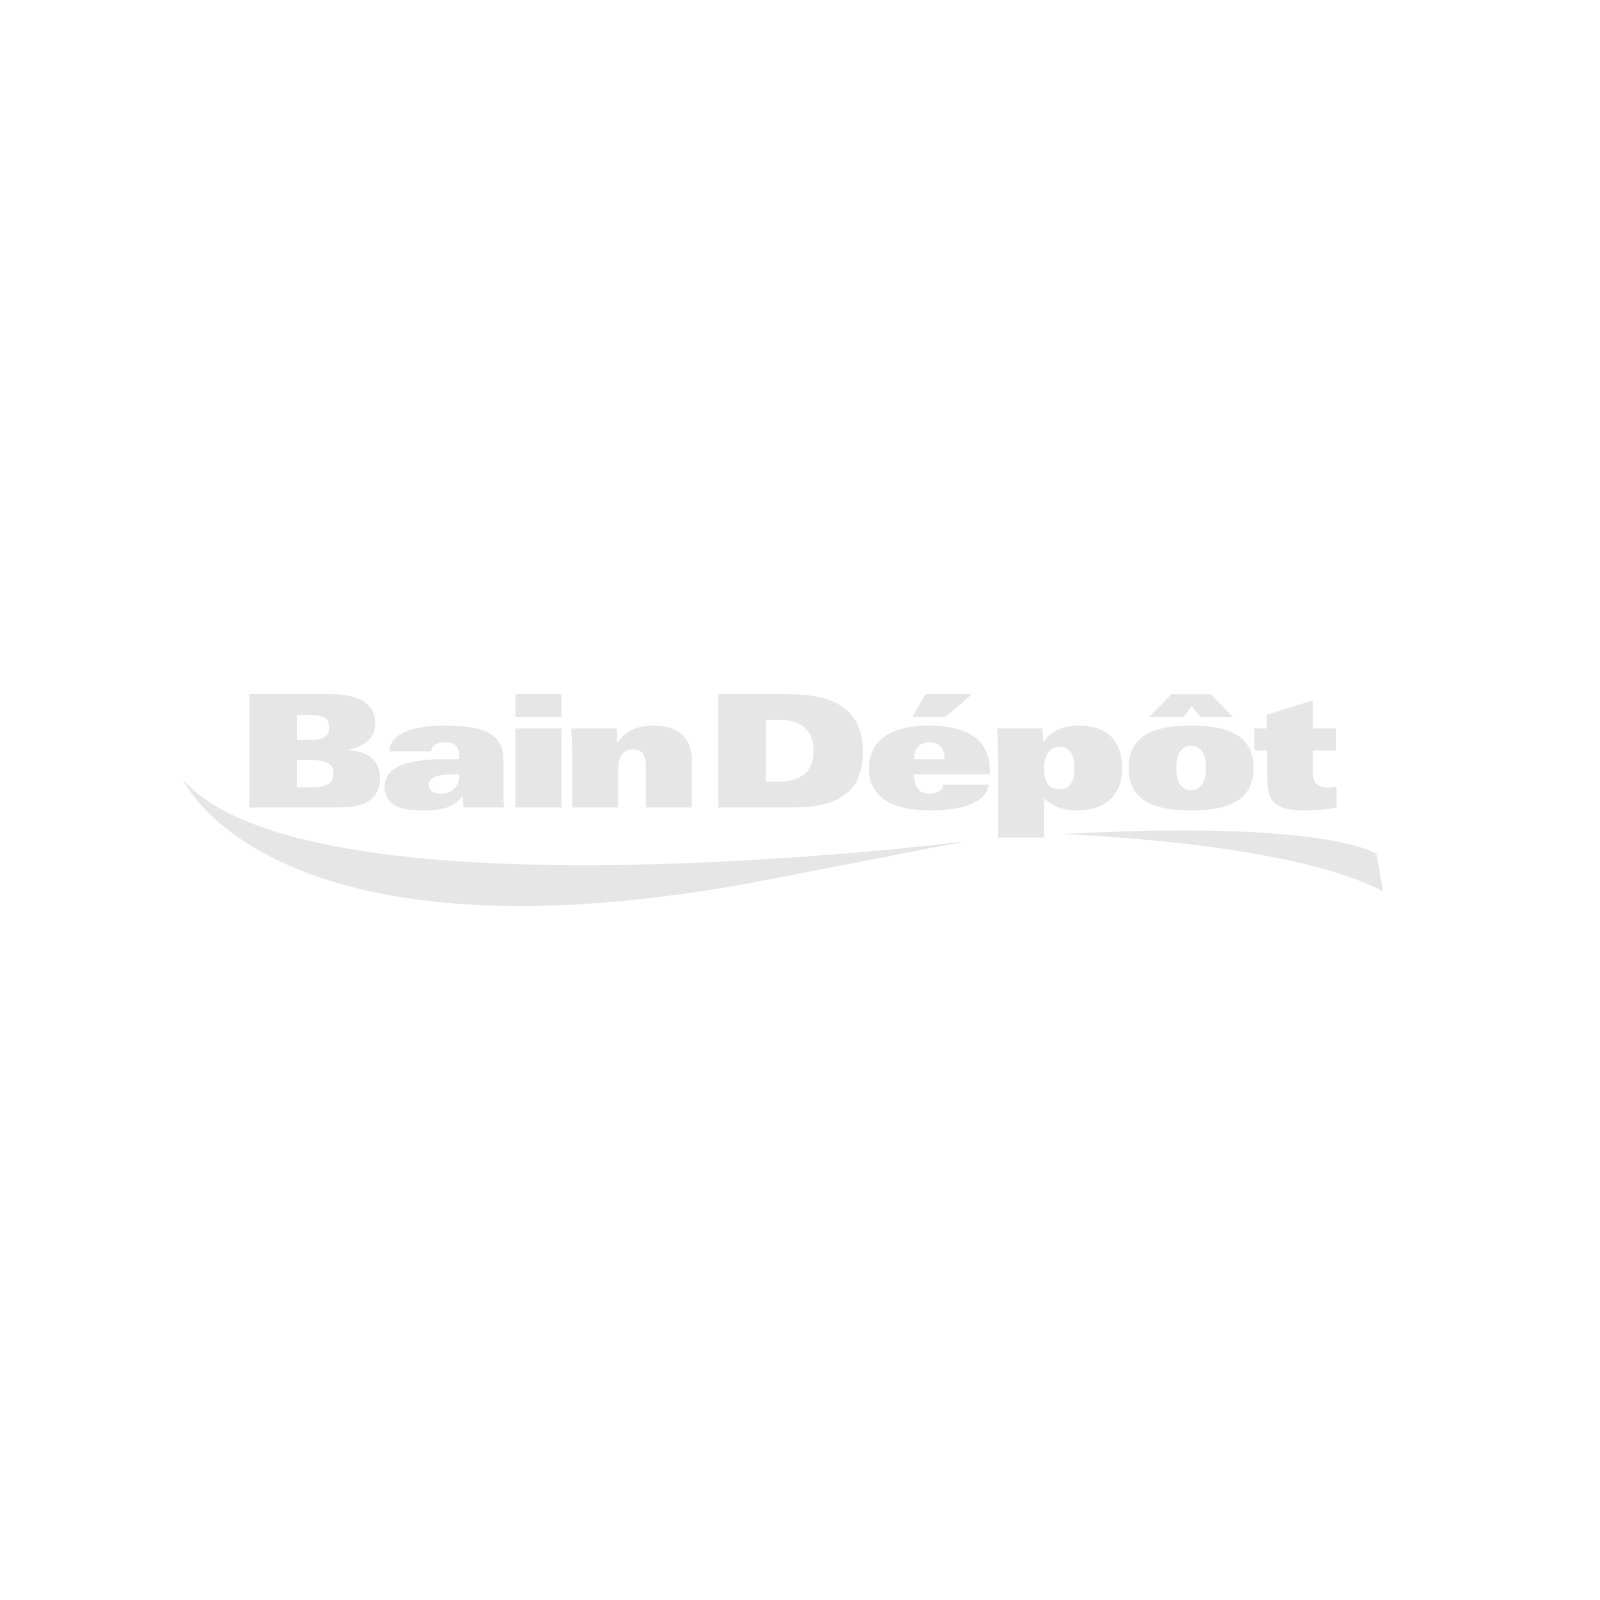 Double undermount kitchen sink 32'' x 18''